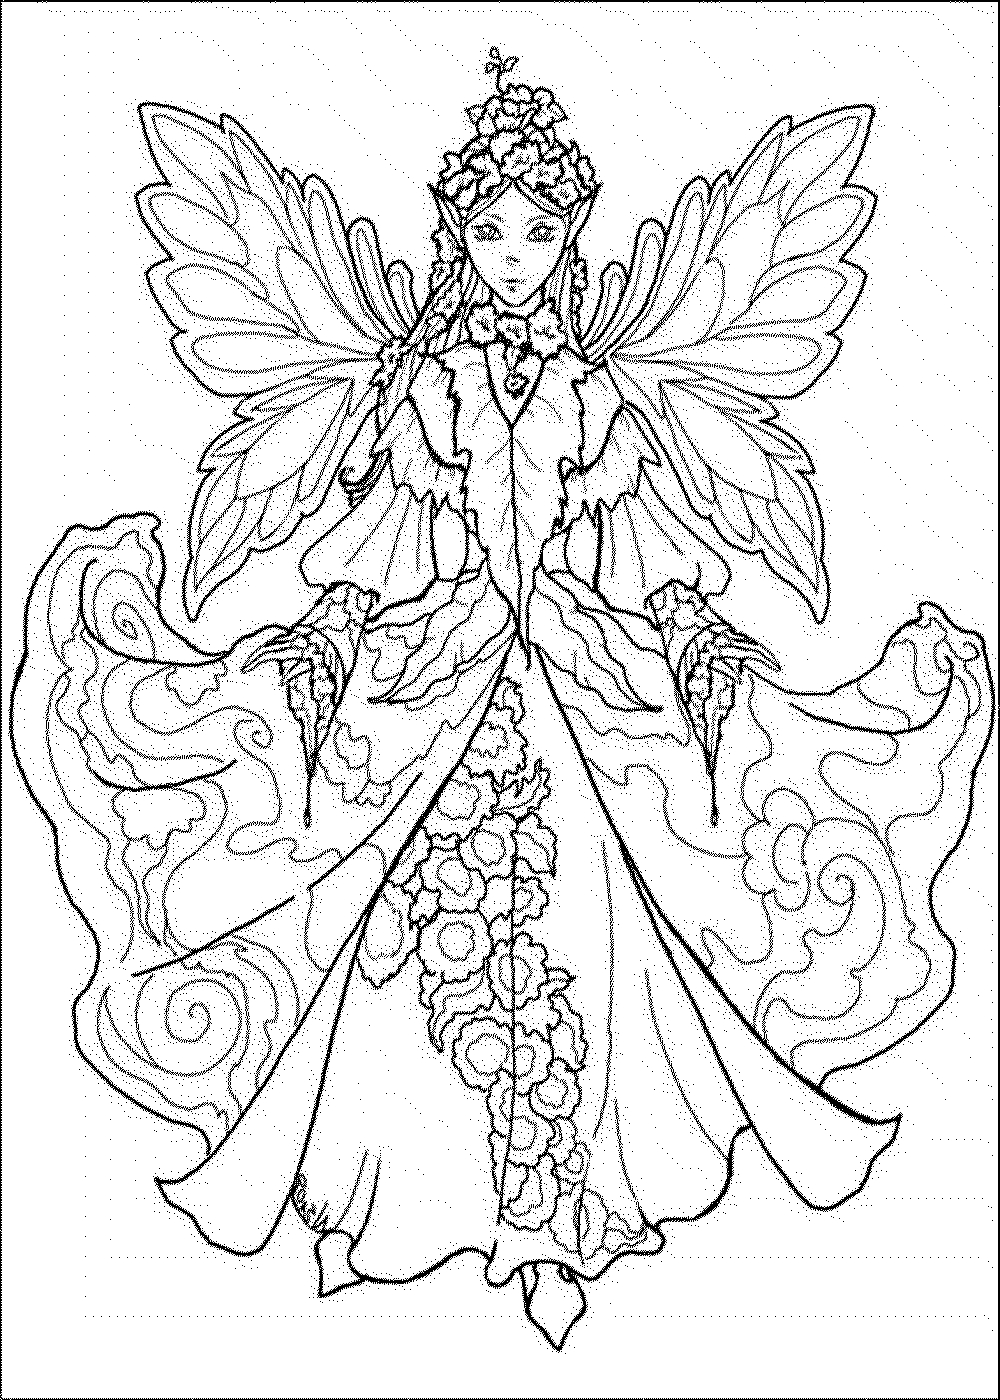 coloring pages of girls realistic realistic girl coloring pages at getdrawings free download coloring realistic pages girls of